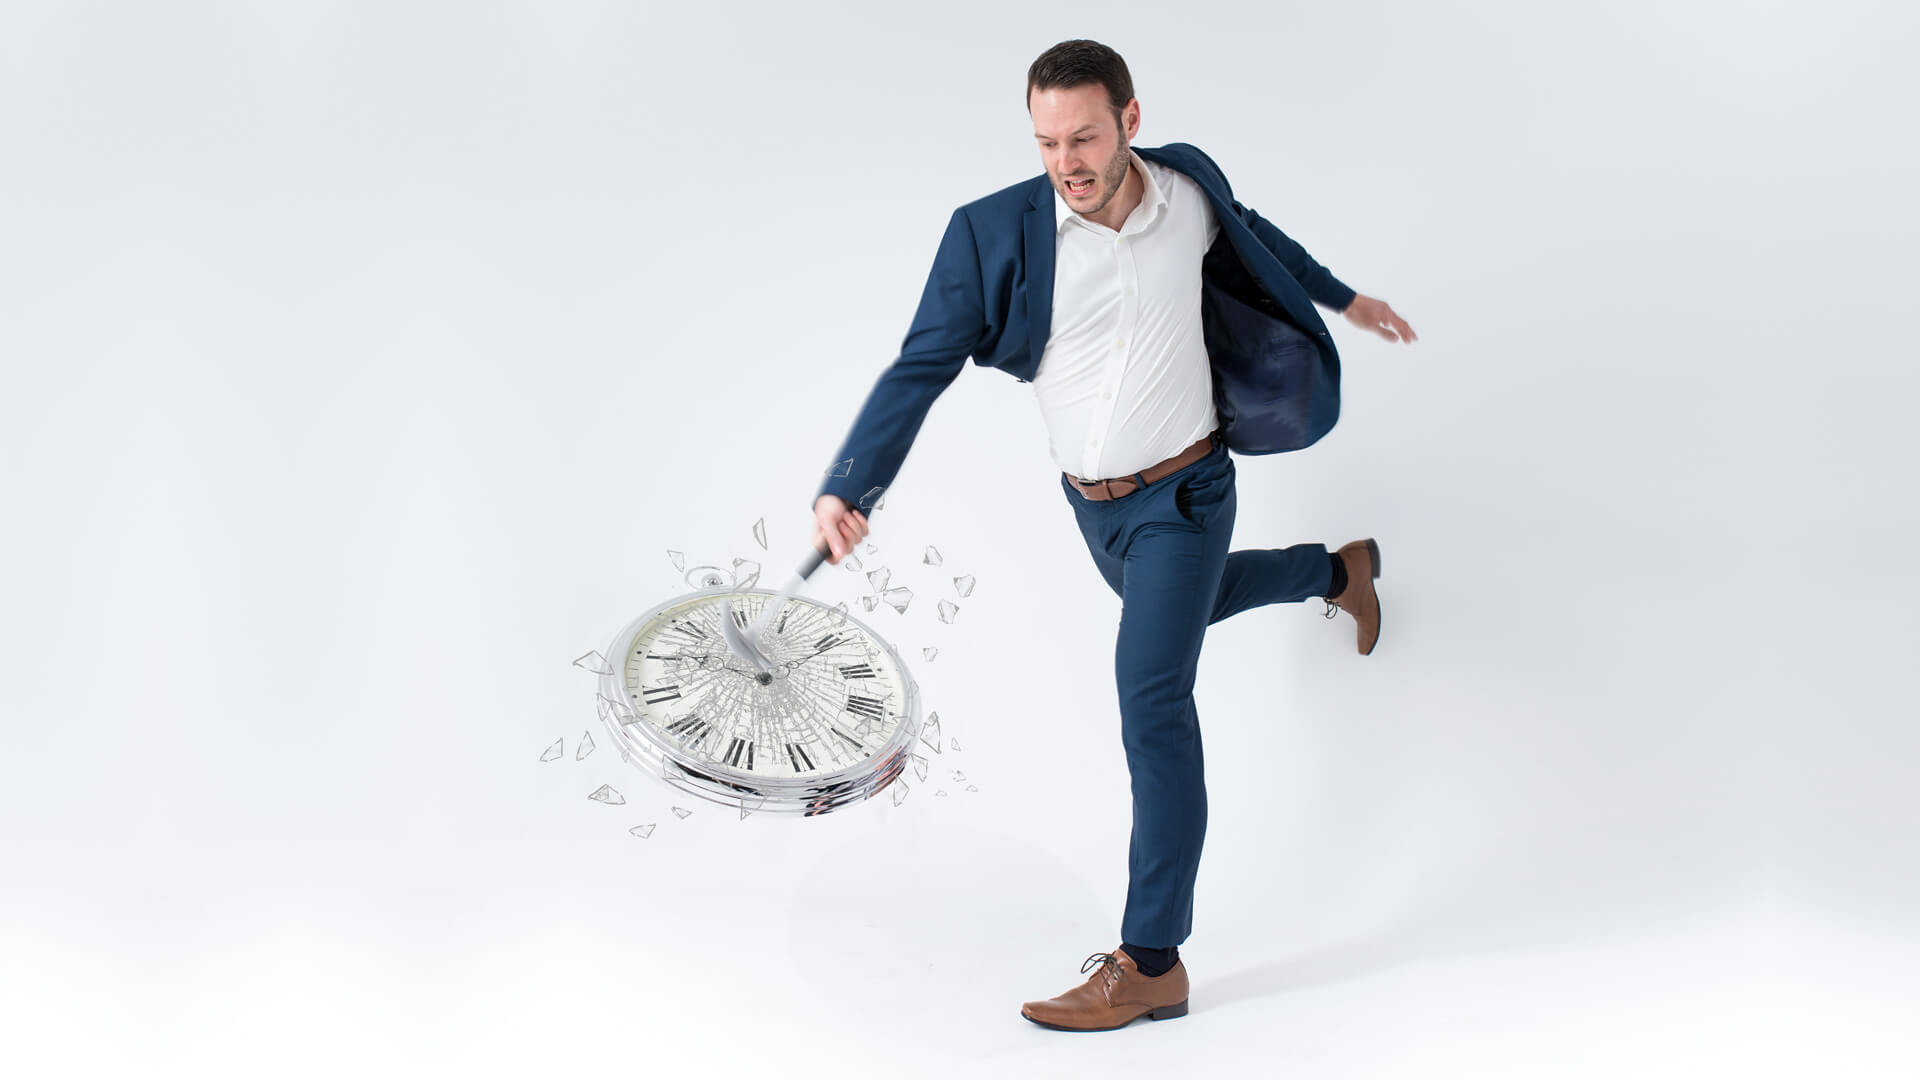 Manchester hypnotist Aaron Calvert smashing clock and breaking the mould of the stage hypnotist